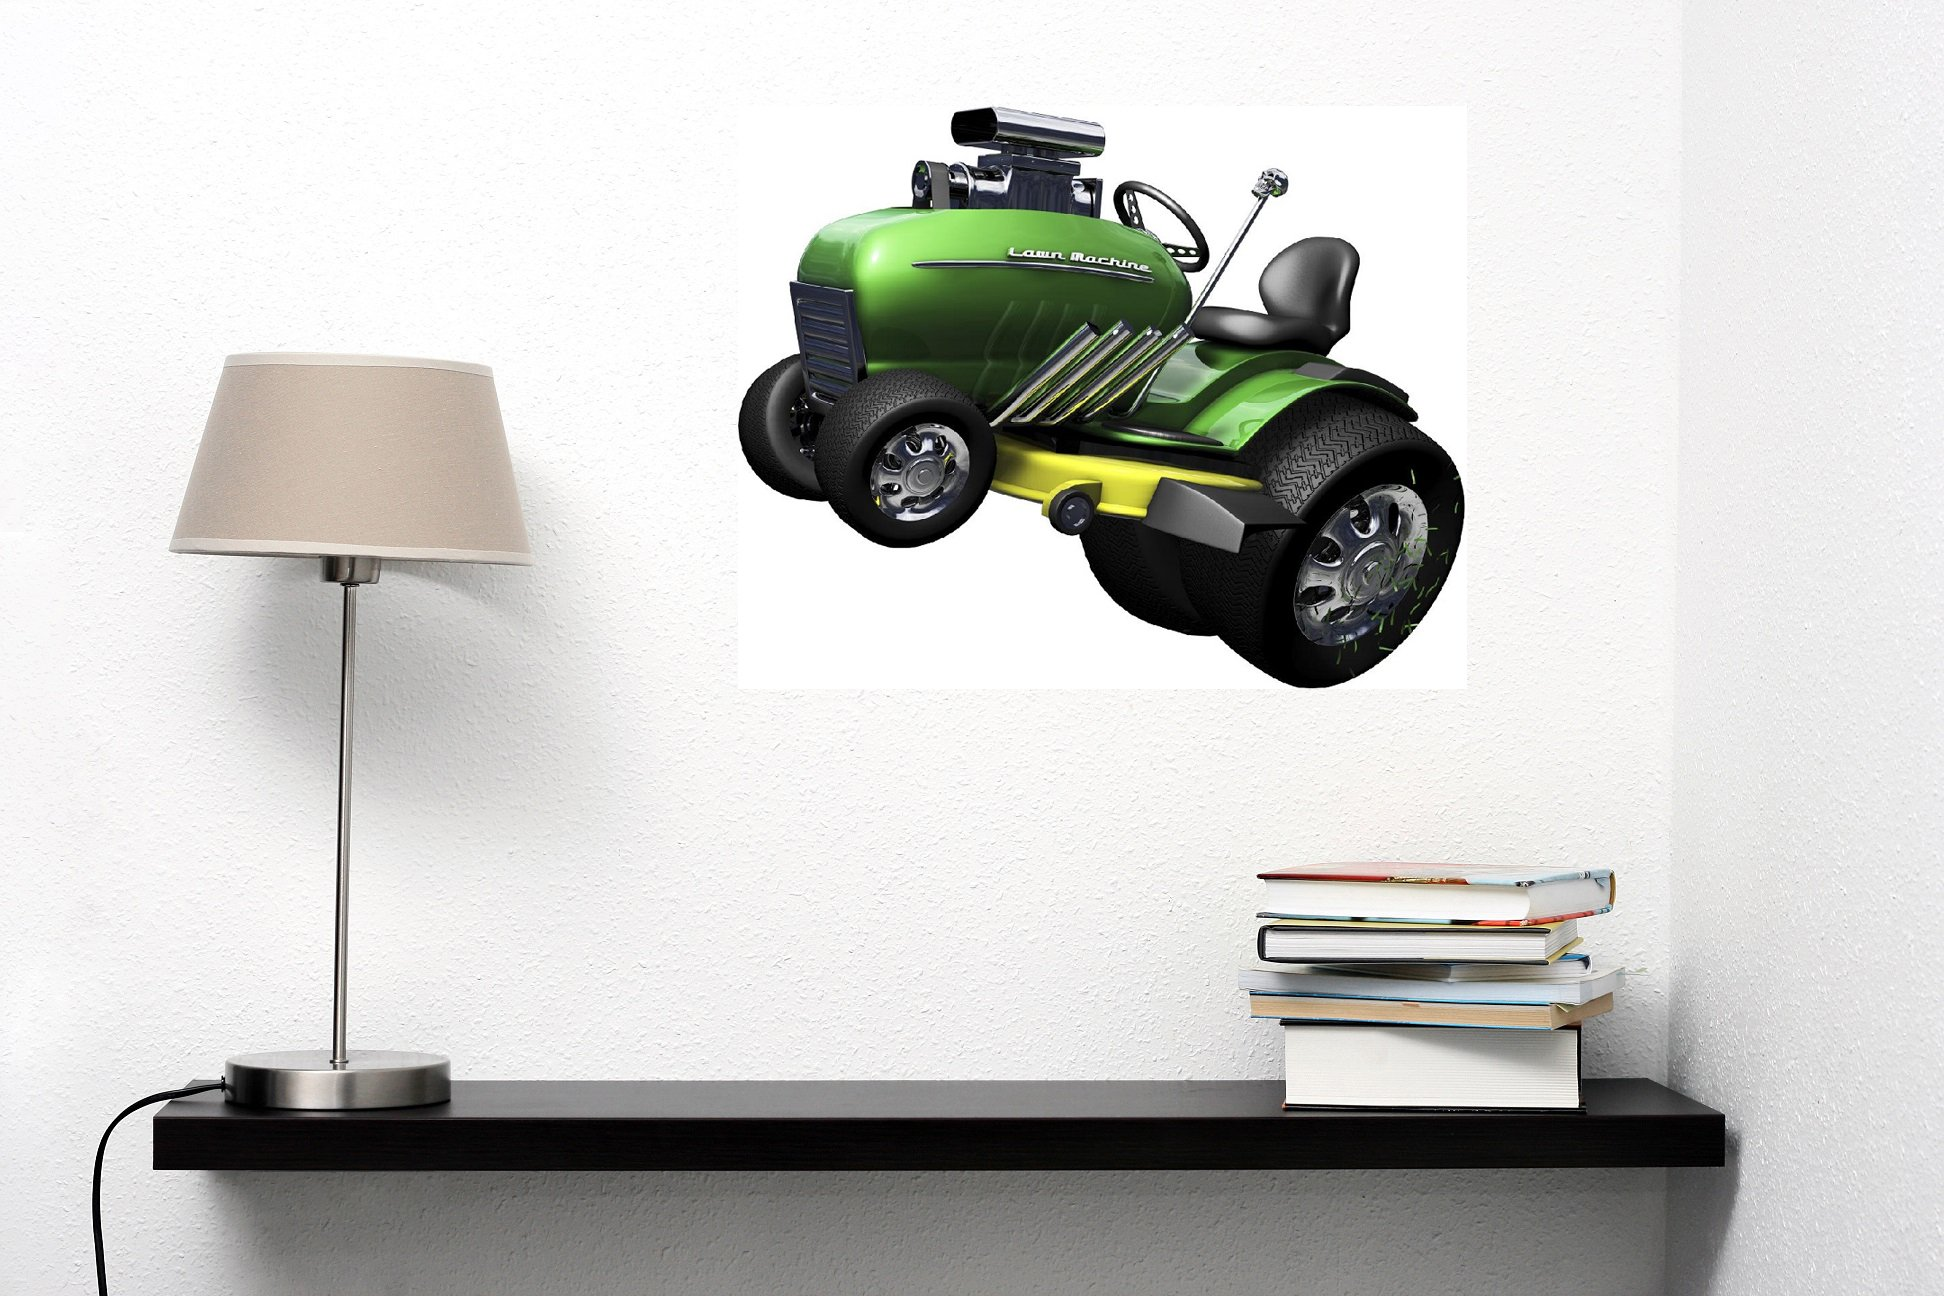 12'' Lawn Mower Machine Hot Rod Racer #1 **HOT** Wall Graphic Decal Sticker Mural Home Kids Game Room Art Decor NEW !!